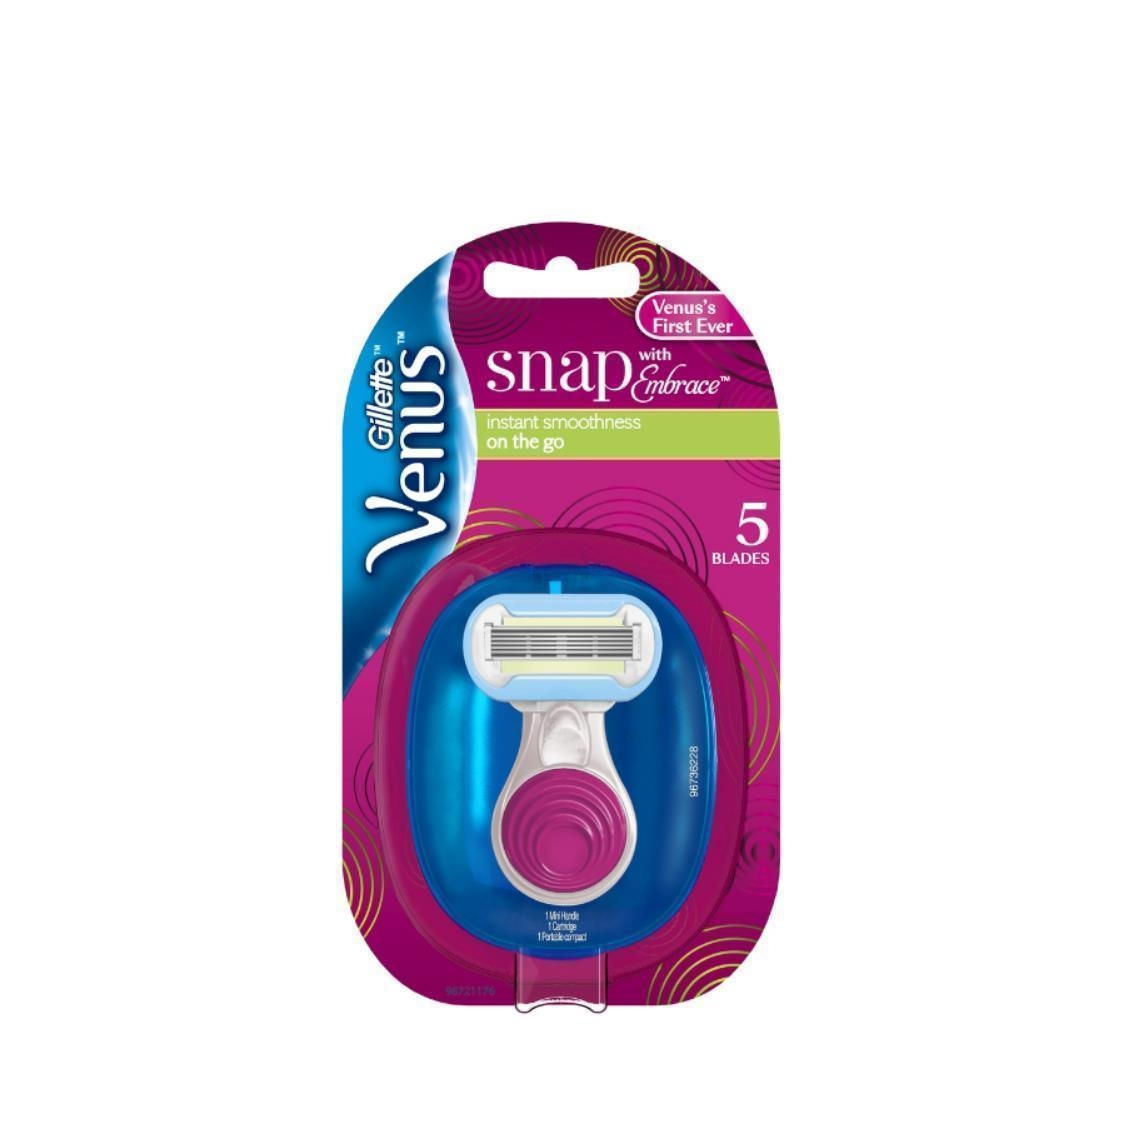 Venus Embrace Snap Razor 1 Count  Refill 1 Count  Portable Compact 1 Count